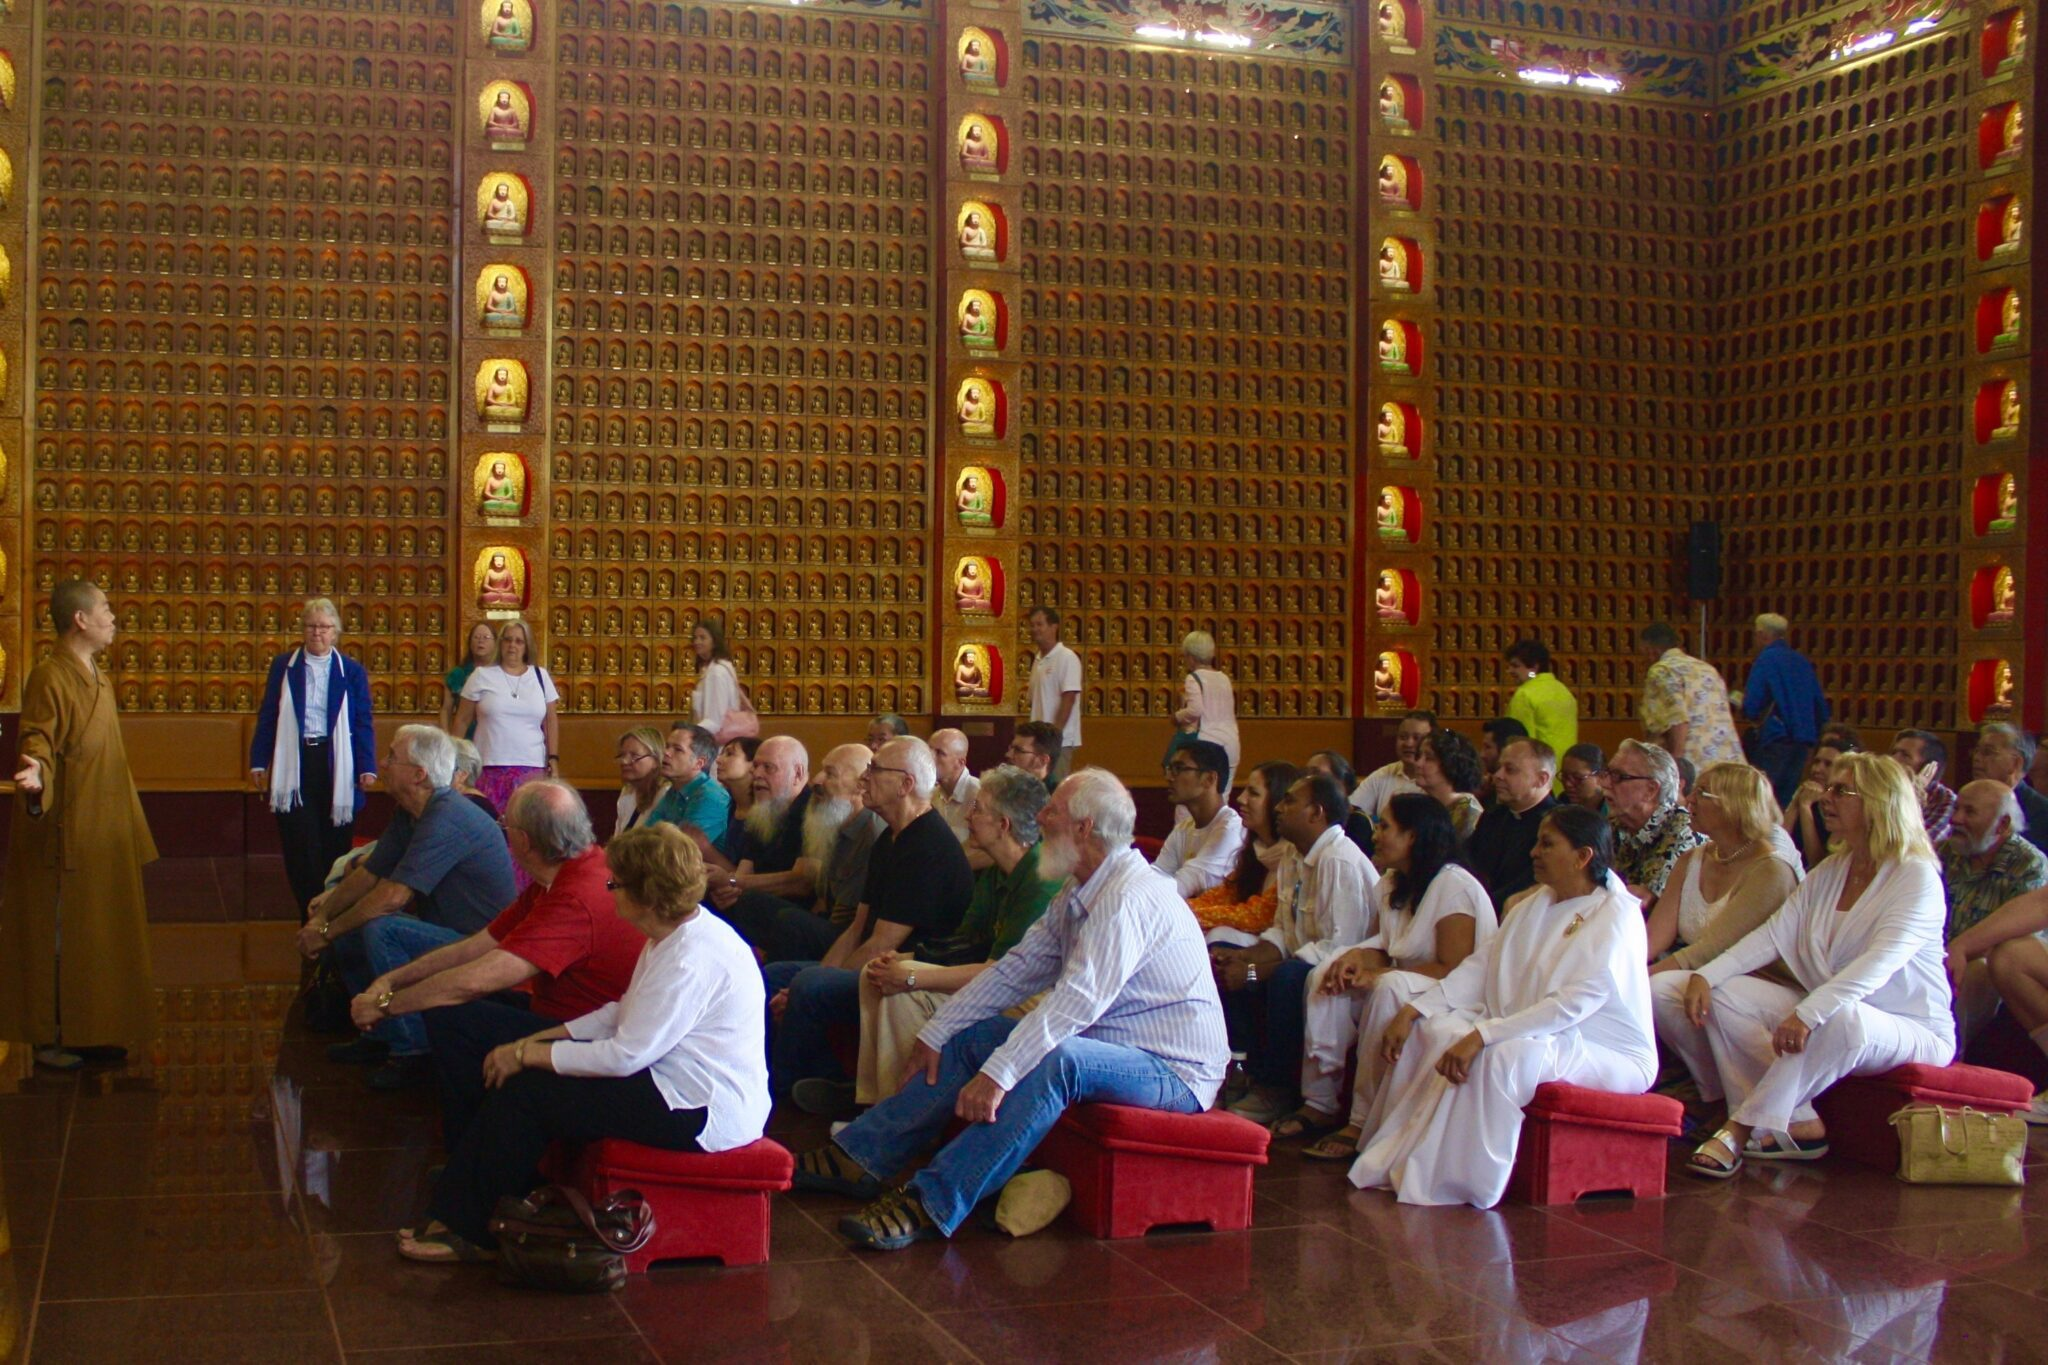 Buddhist Rituals in the Main Hall